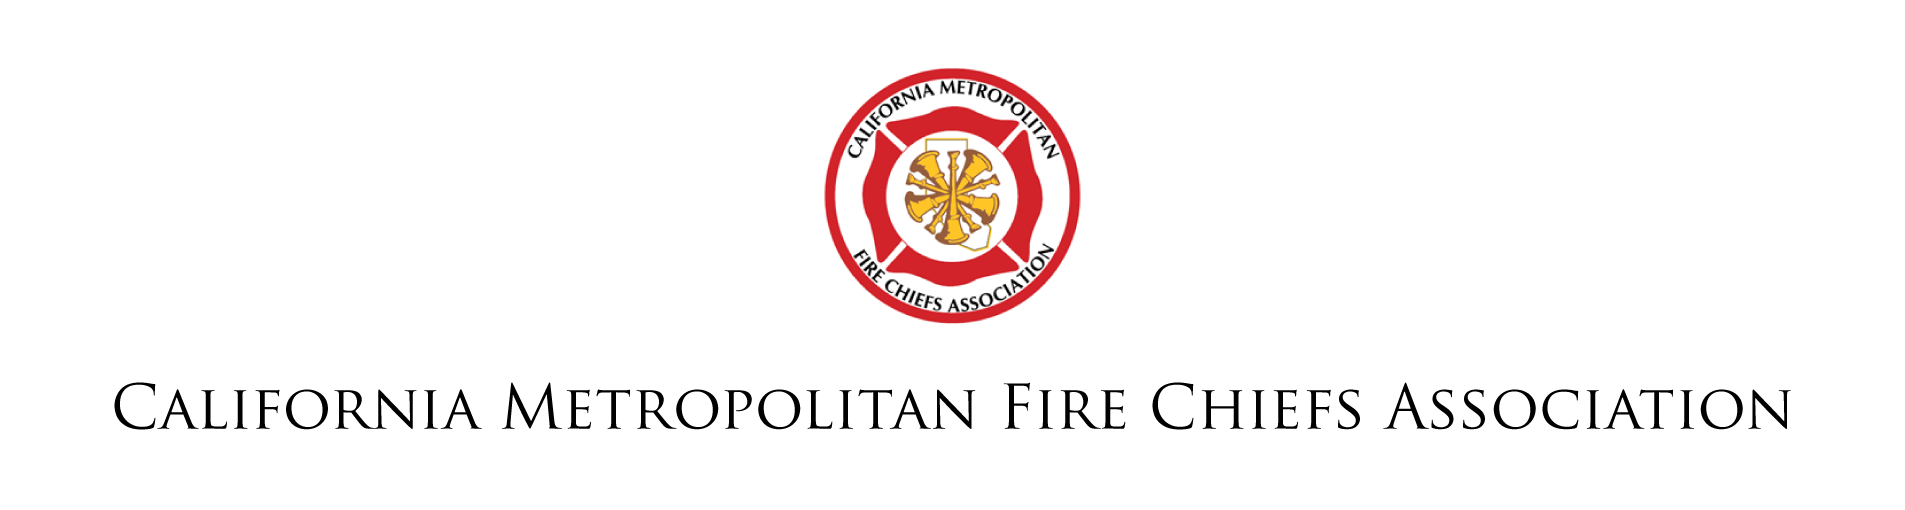 California Fire Chiefs Association - Metropolitan